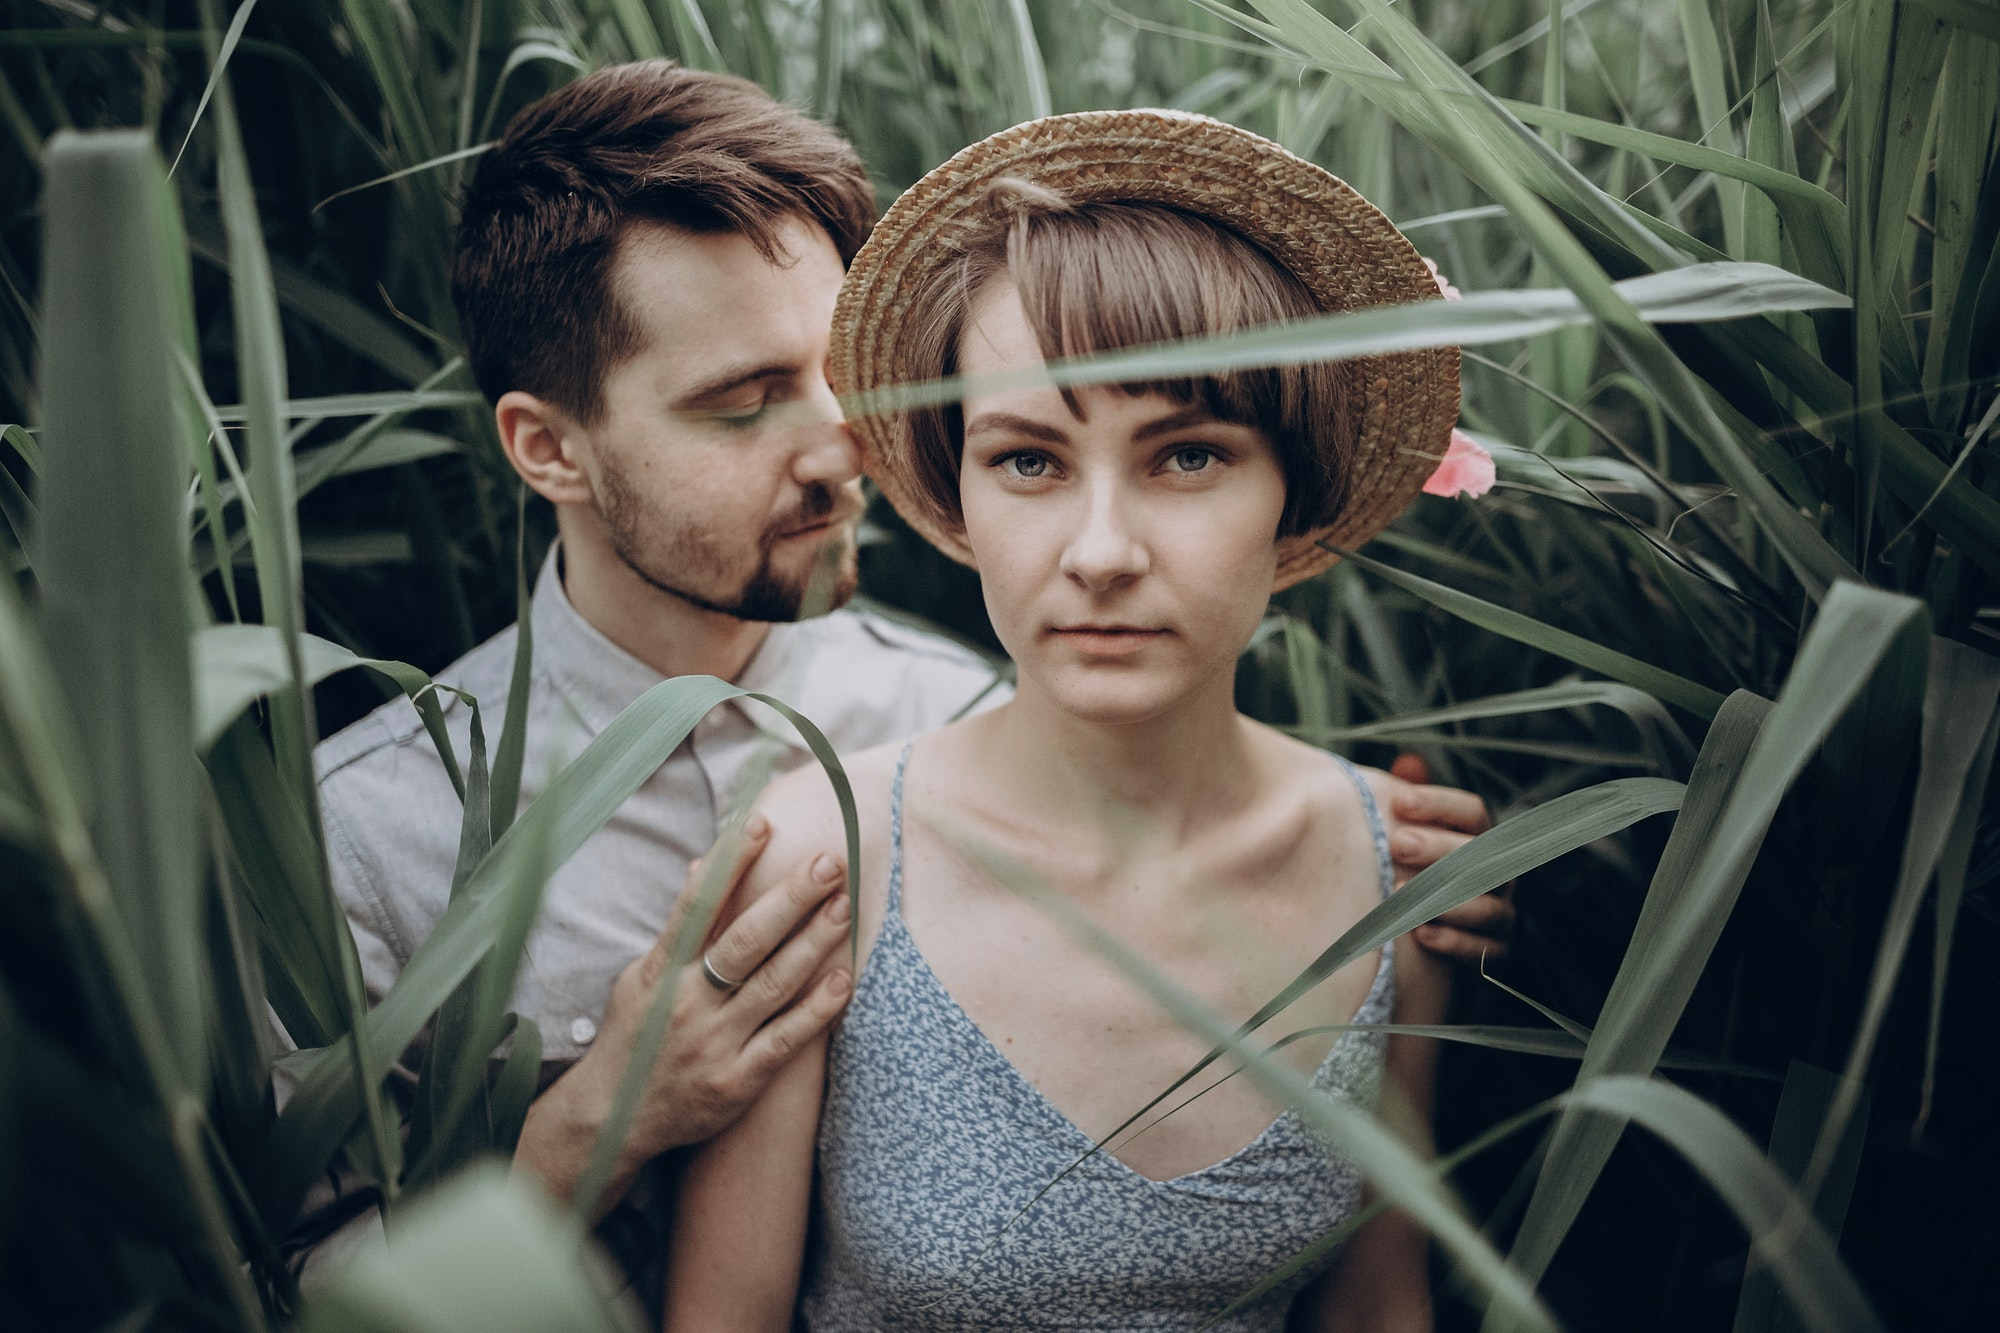 stylish-rustic-bride-and-groom-embracing-in-windy-high-reed.jpg